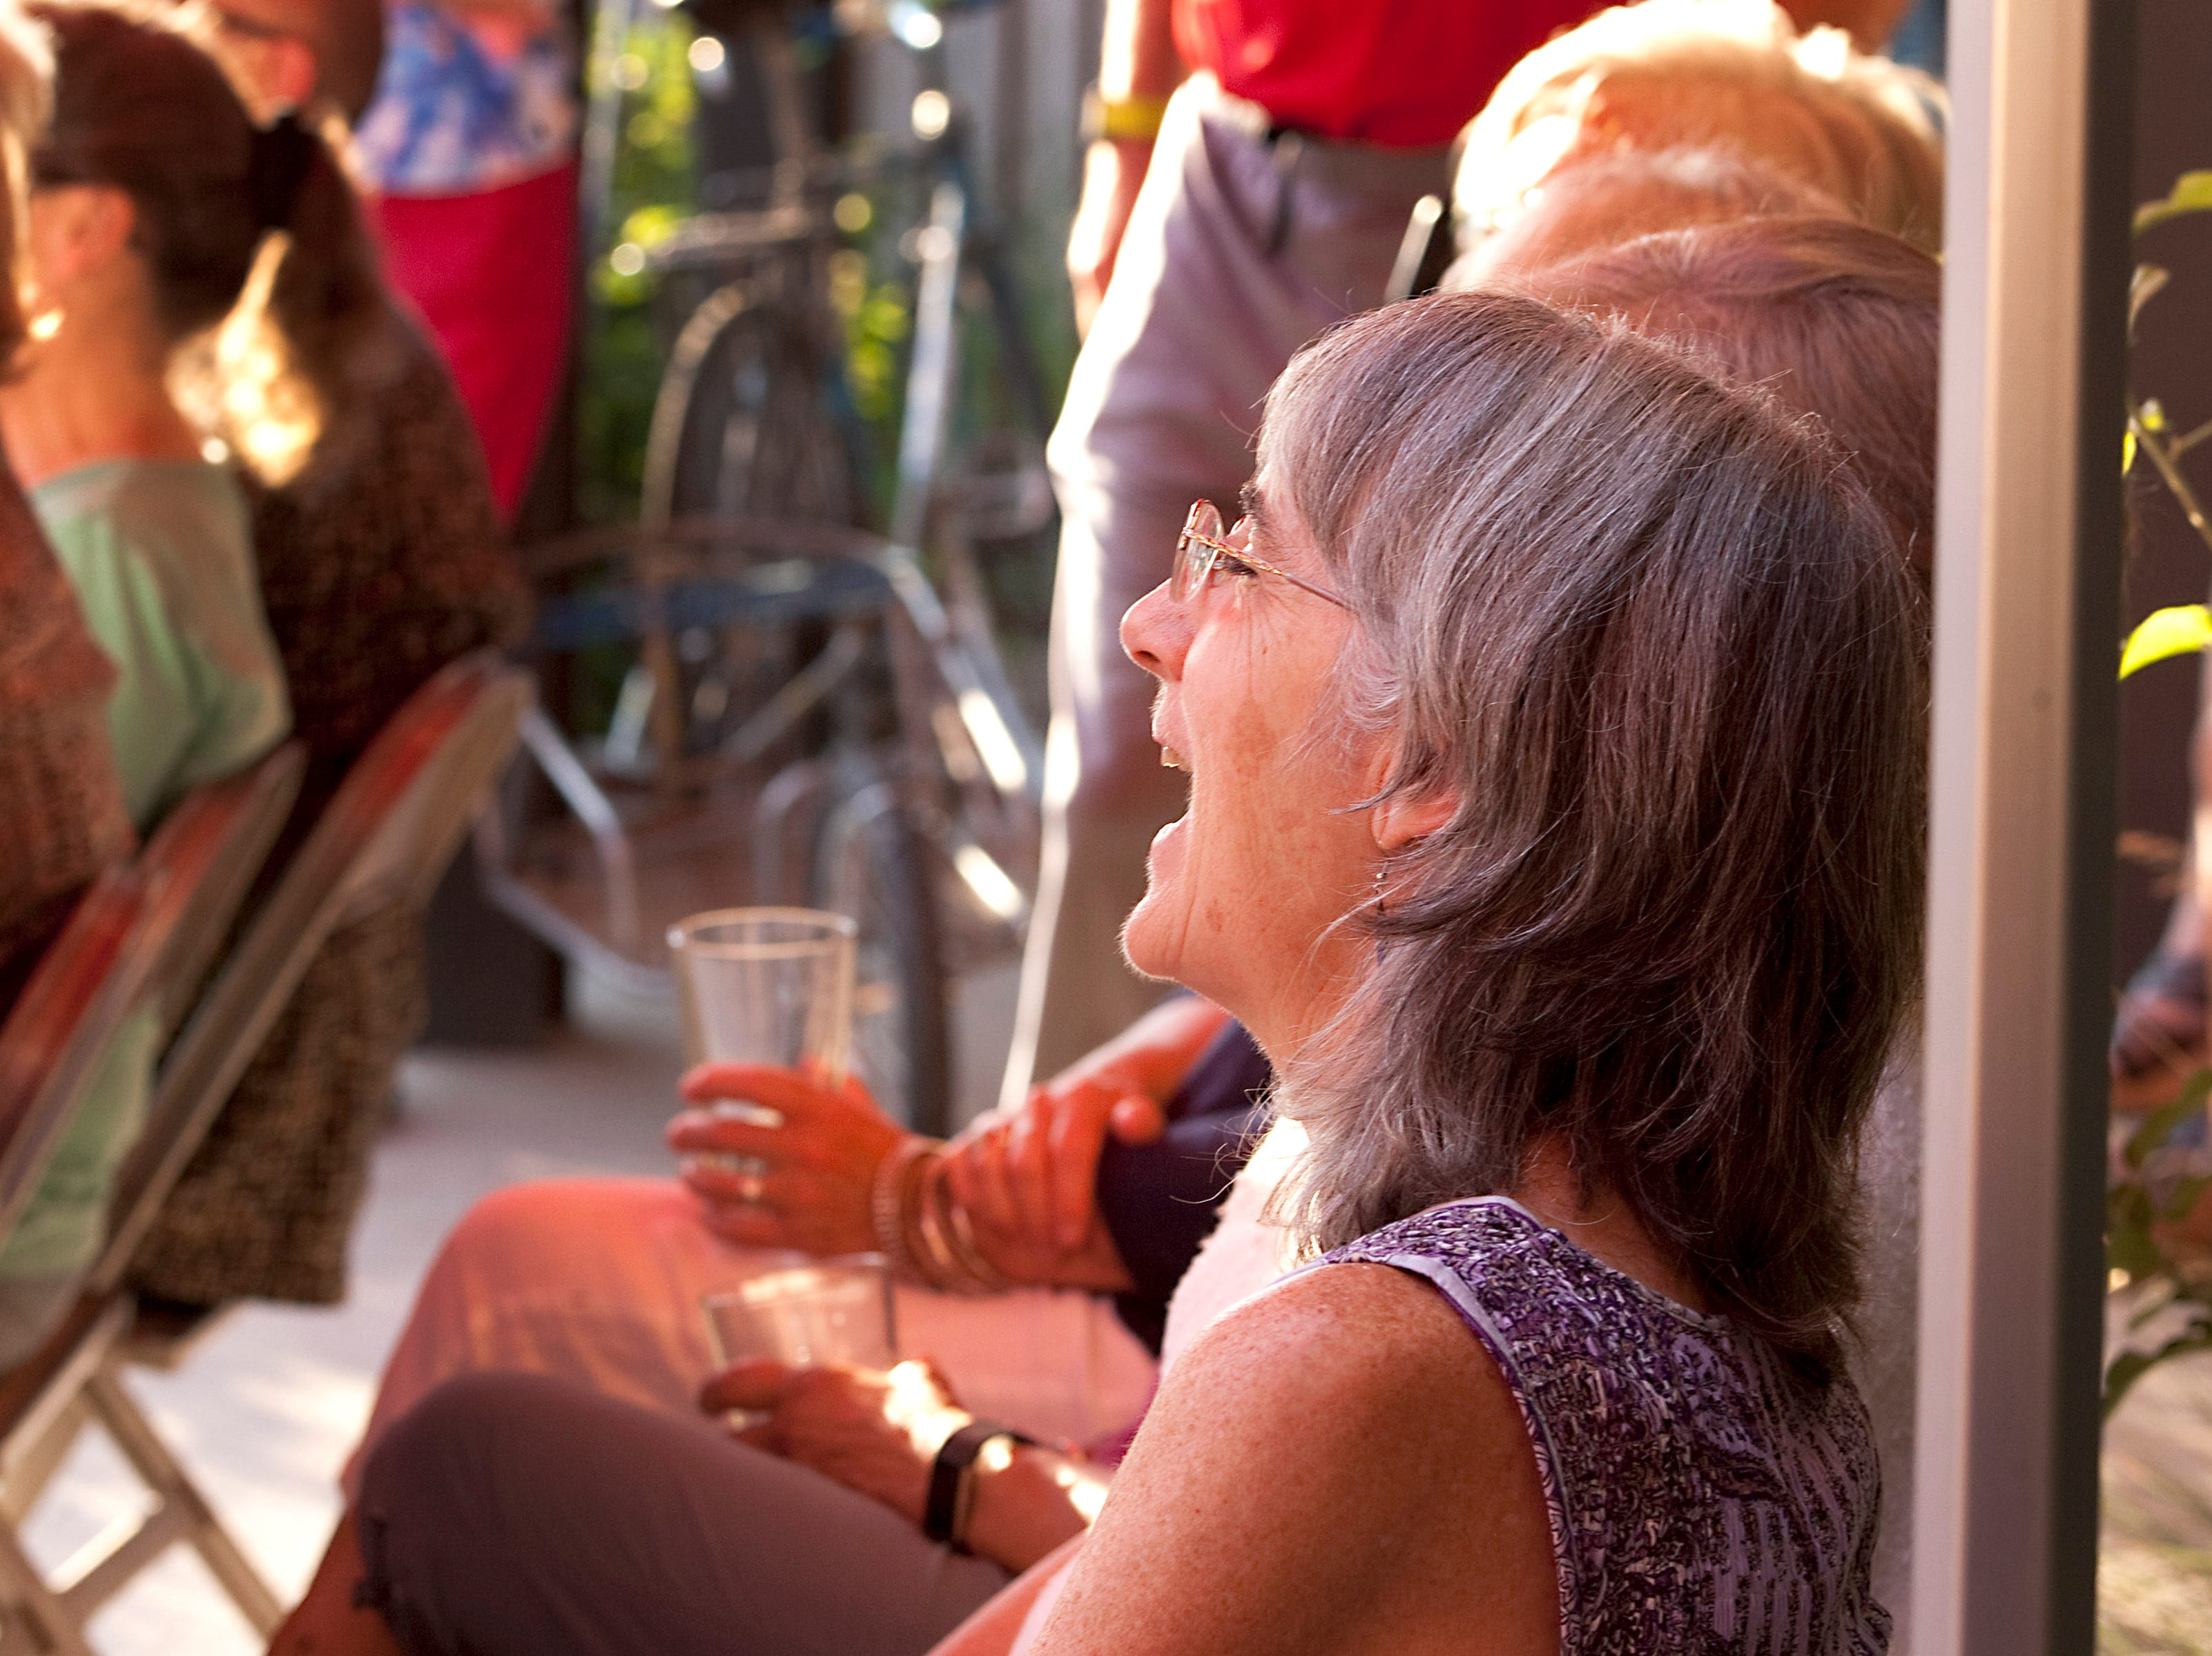 An audience member reacts to a story during the Coloradoan Storytellers Project held at Wolverine Farm Letterpress & Publick House on Wednesday, Aug. 8, 2018.